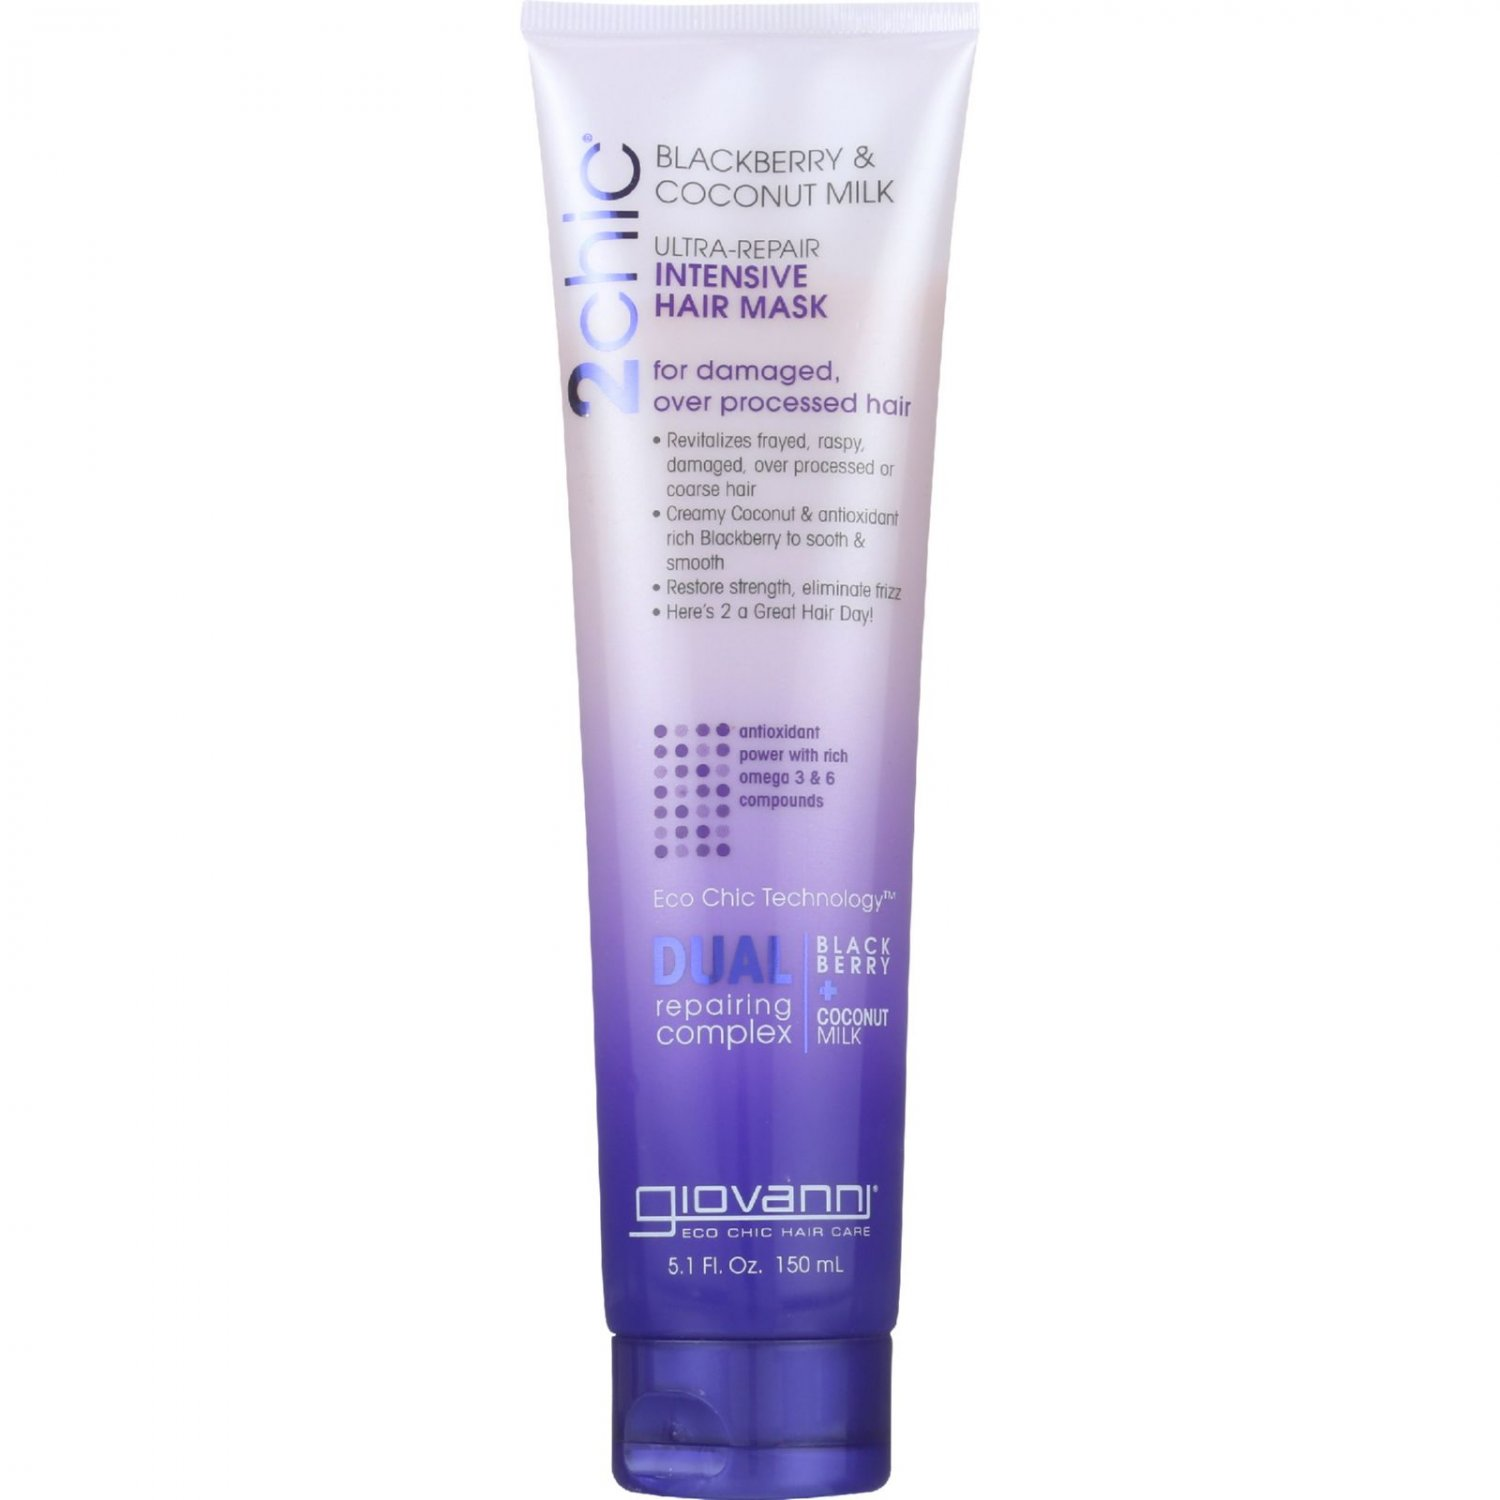 Giovanni Hair Care Products Hair Mask - 2Chic - Repairing Intensive - Blackberry and Coconut Milk -